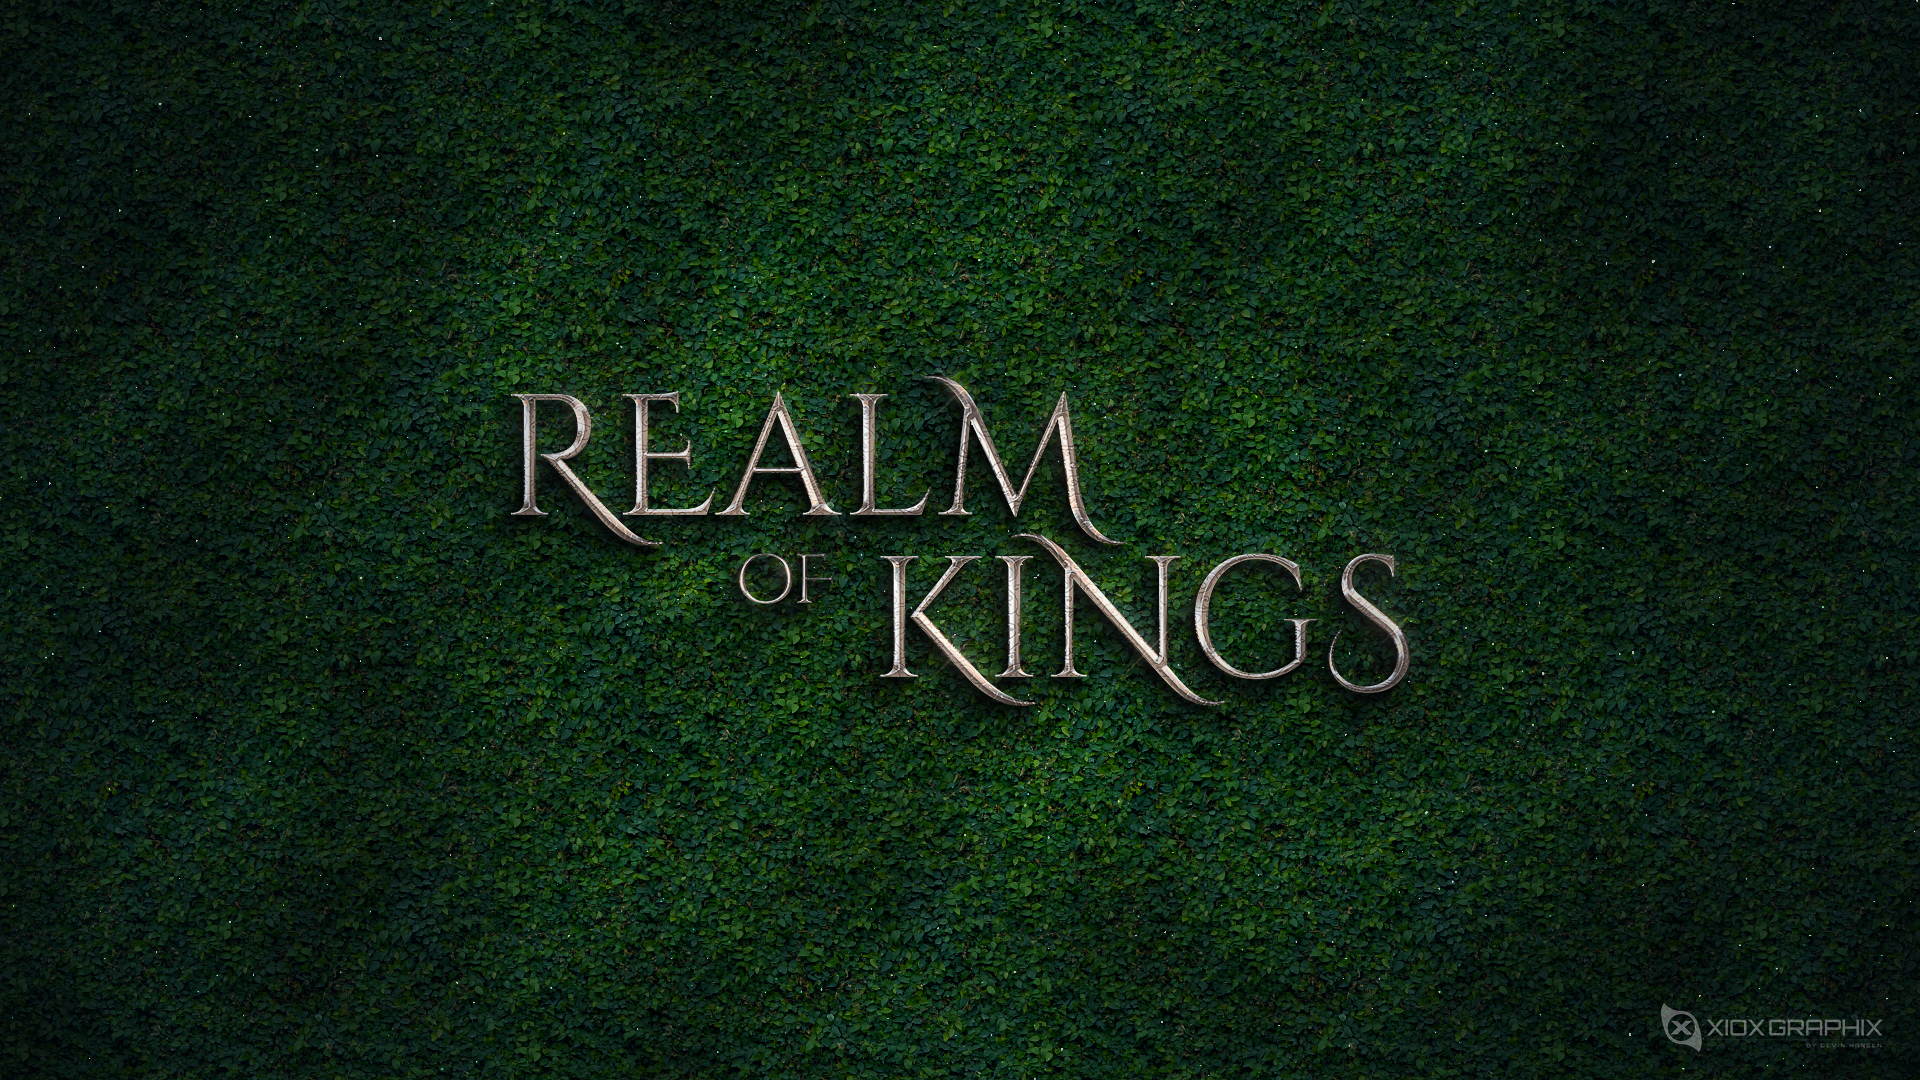 Realm of Kings -WALLPAPER-